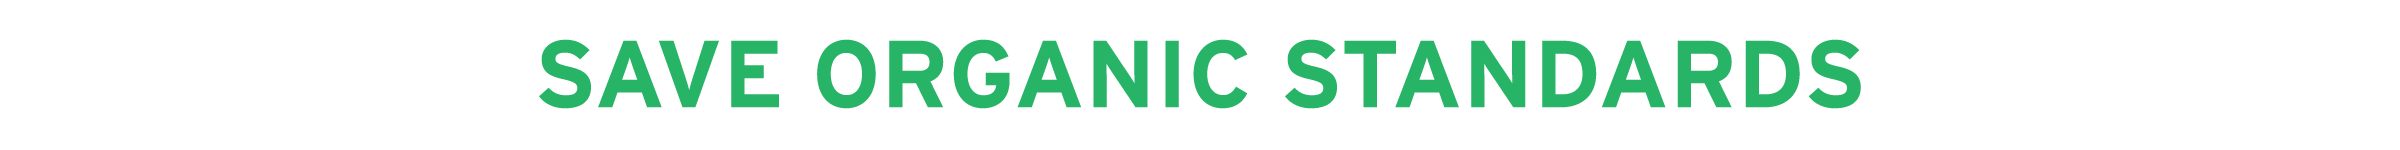 Save Organic Standards campaign banner image